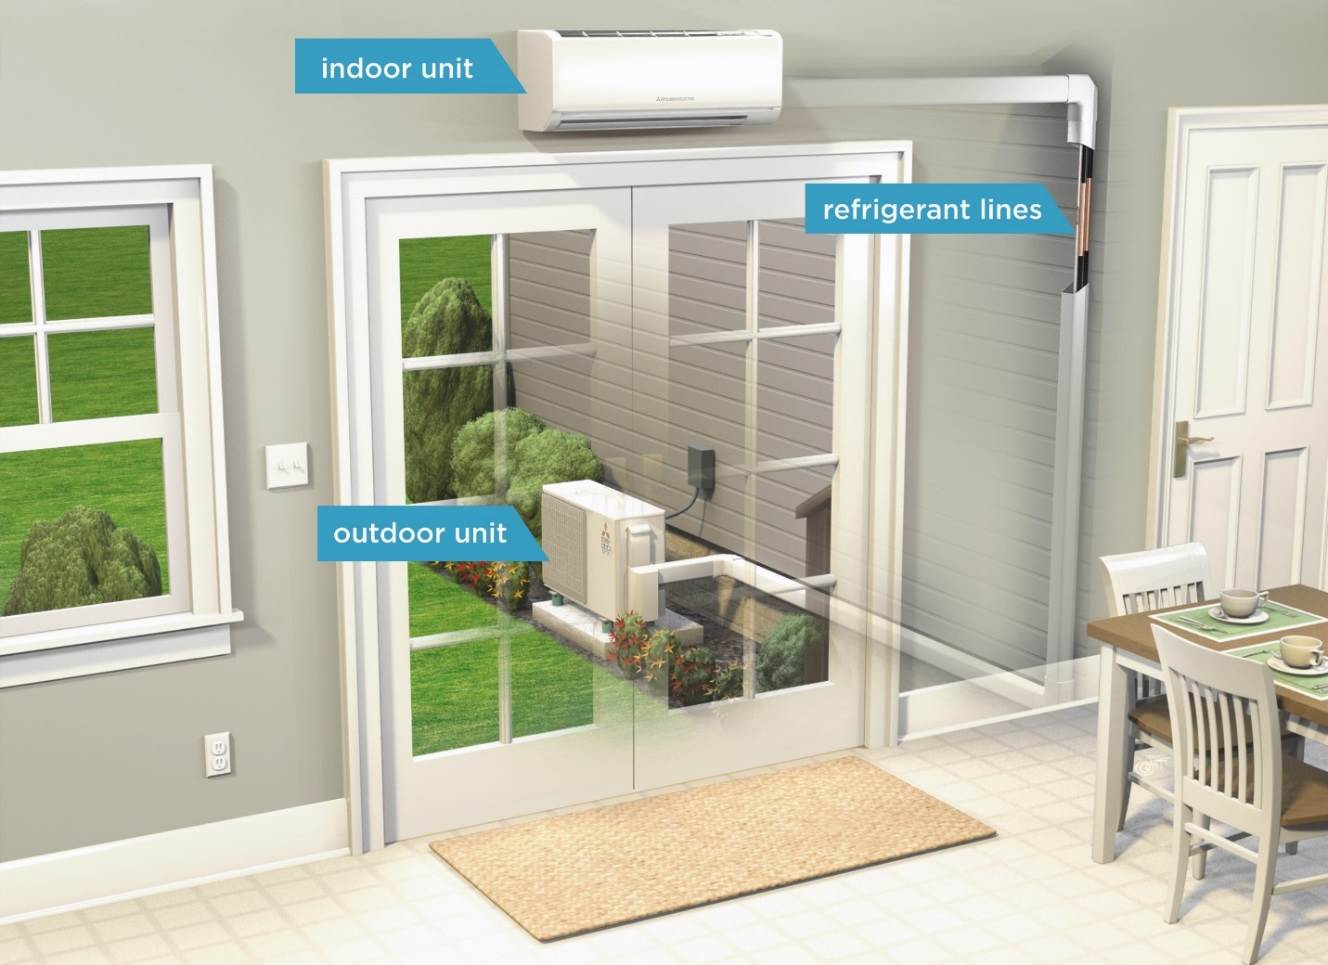 Small Heating And Cooling Units : Ductless heating cooling mini split systems energy star